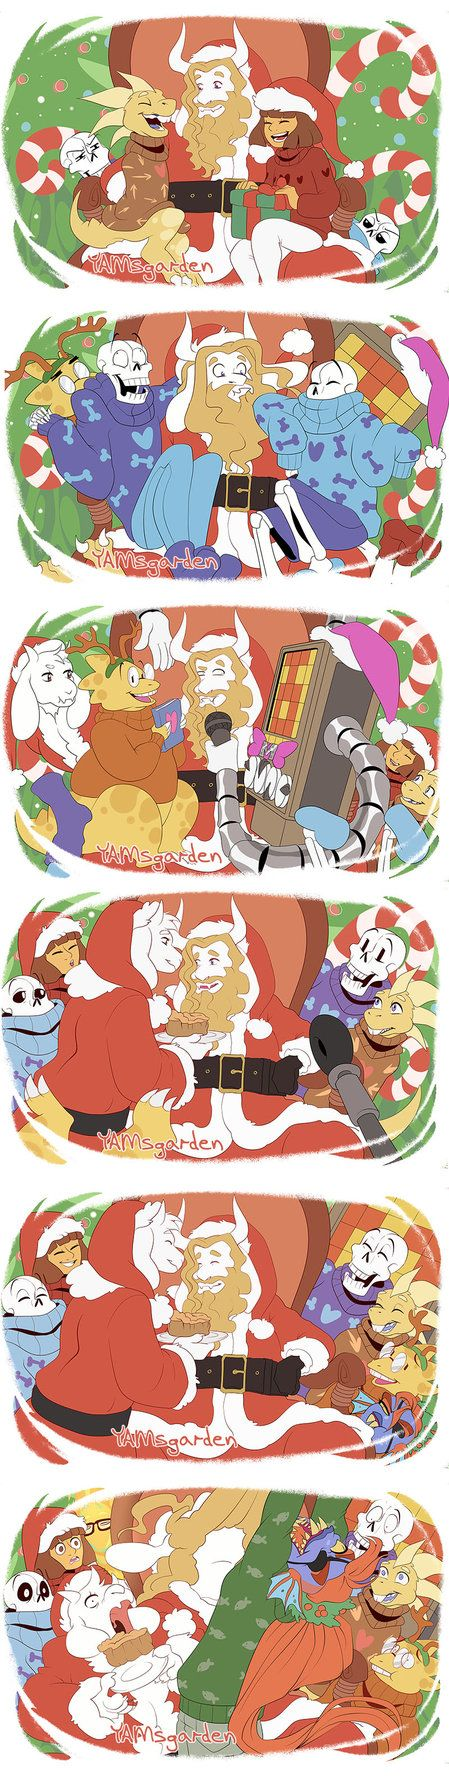 HAPPY HOLIDAYS! by YAMsgarden.deviantart.com on @DeviantArt << all hail the AWESOME princess